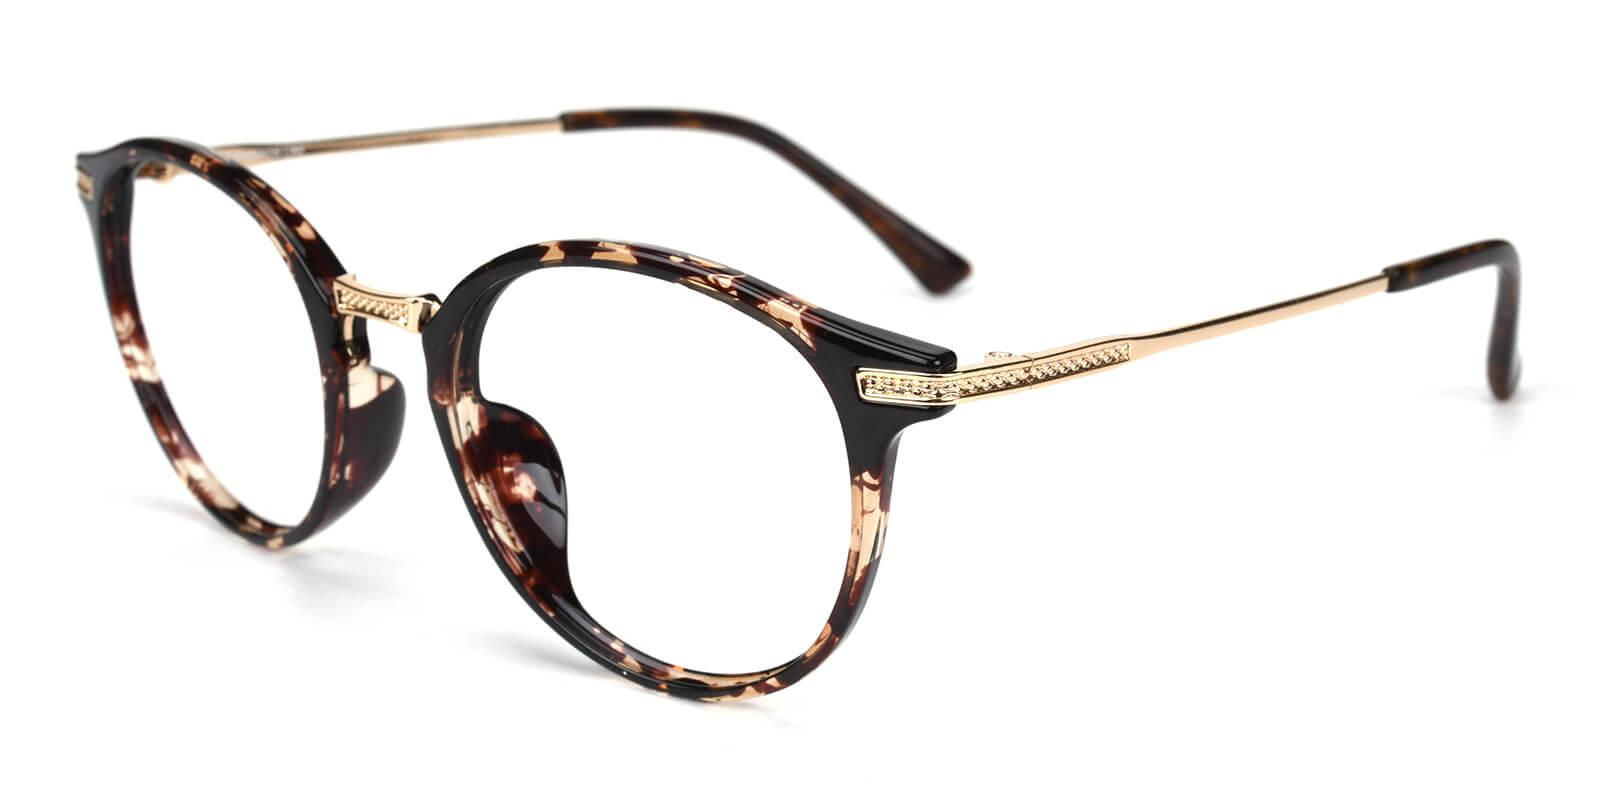 Rebel-Tortoise-Round-Combination-Eyeglasses-additional1